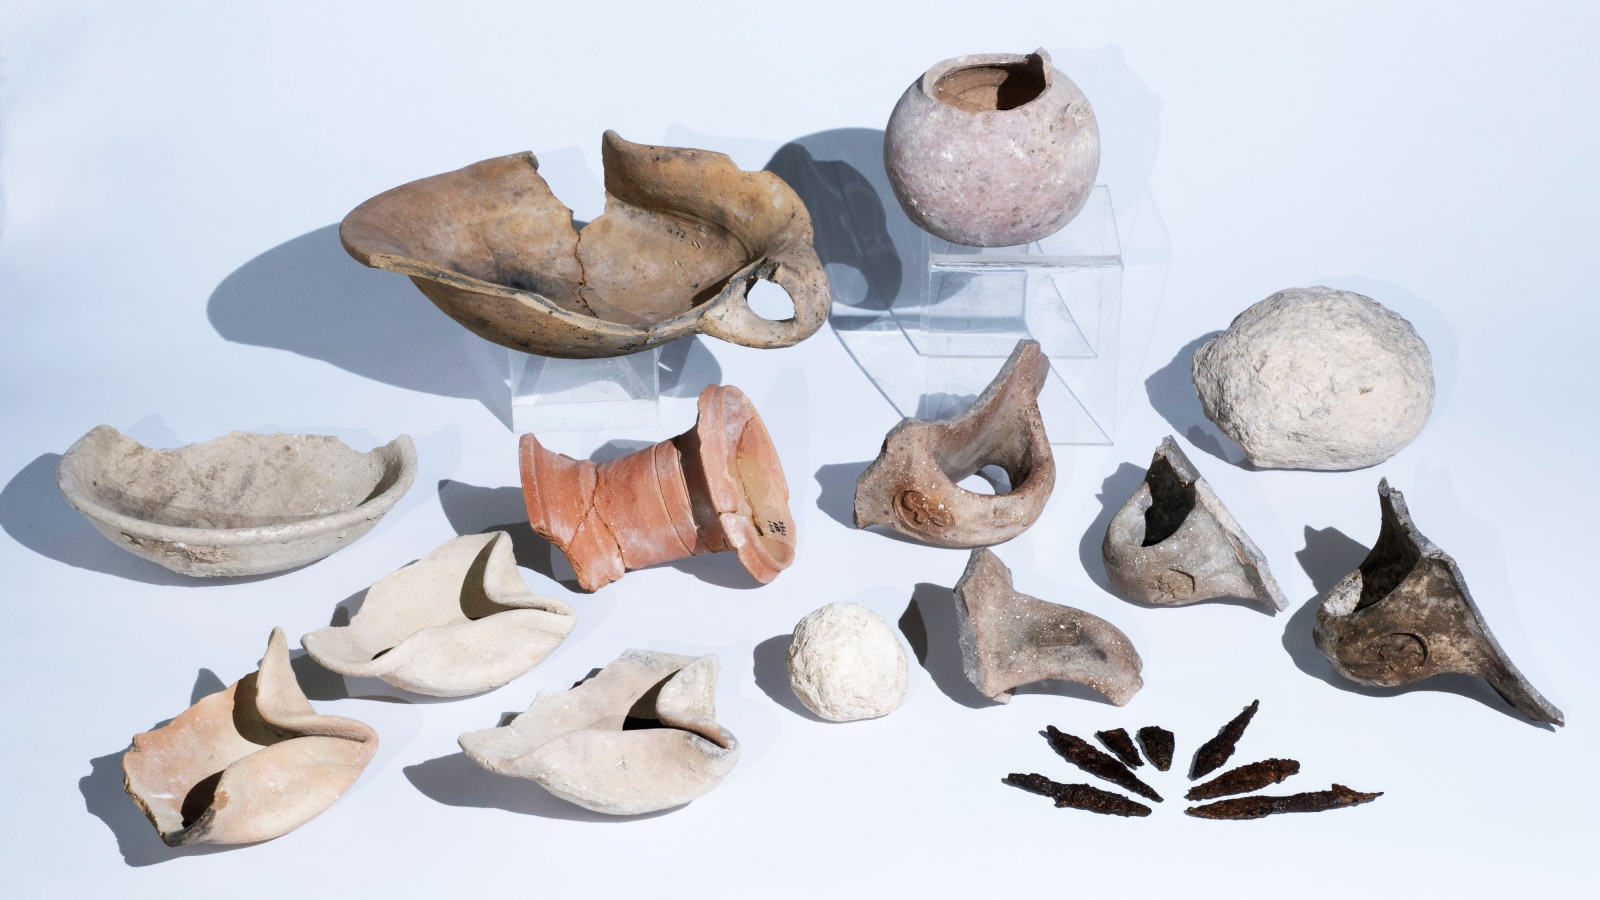 Artifacts from the First Temple period uncovered in Tel Lachish include oil lamps, arrowheads and seal impressions for identifying jars. Photo by Clara Amit/Israel Antiquities Authority